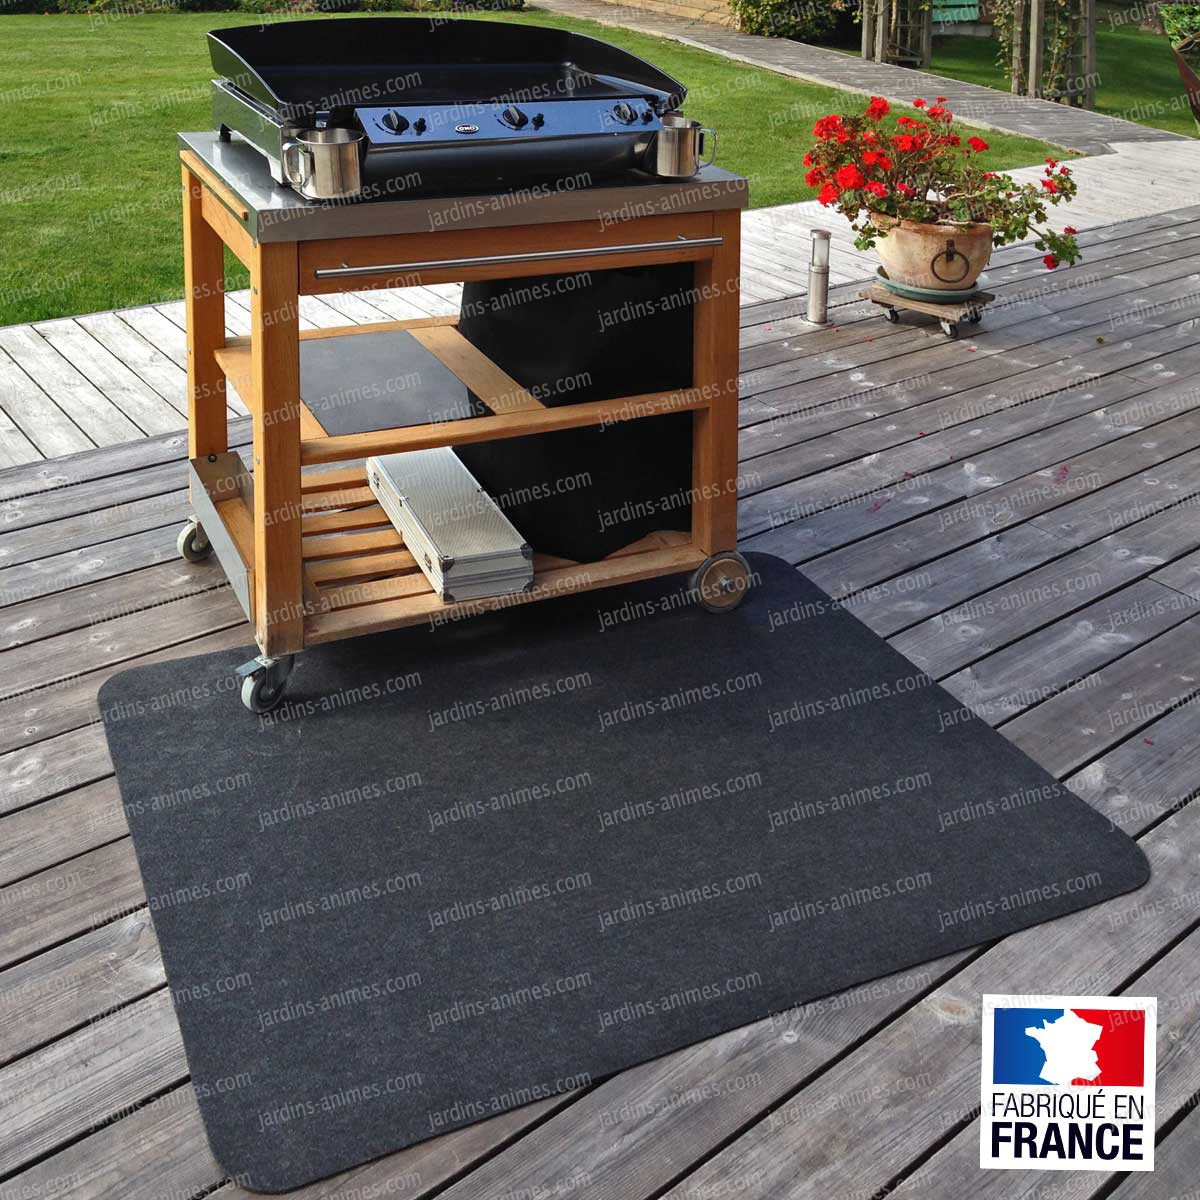 tapis de protection de sols pour plancha bras ro plancha barbecue. Black Bedroom Furniture Sets. Home Design Ideas